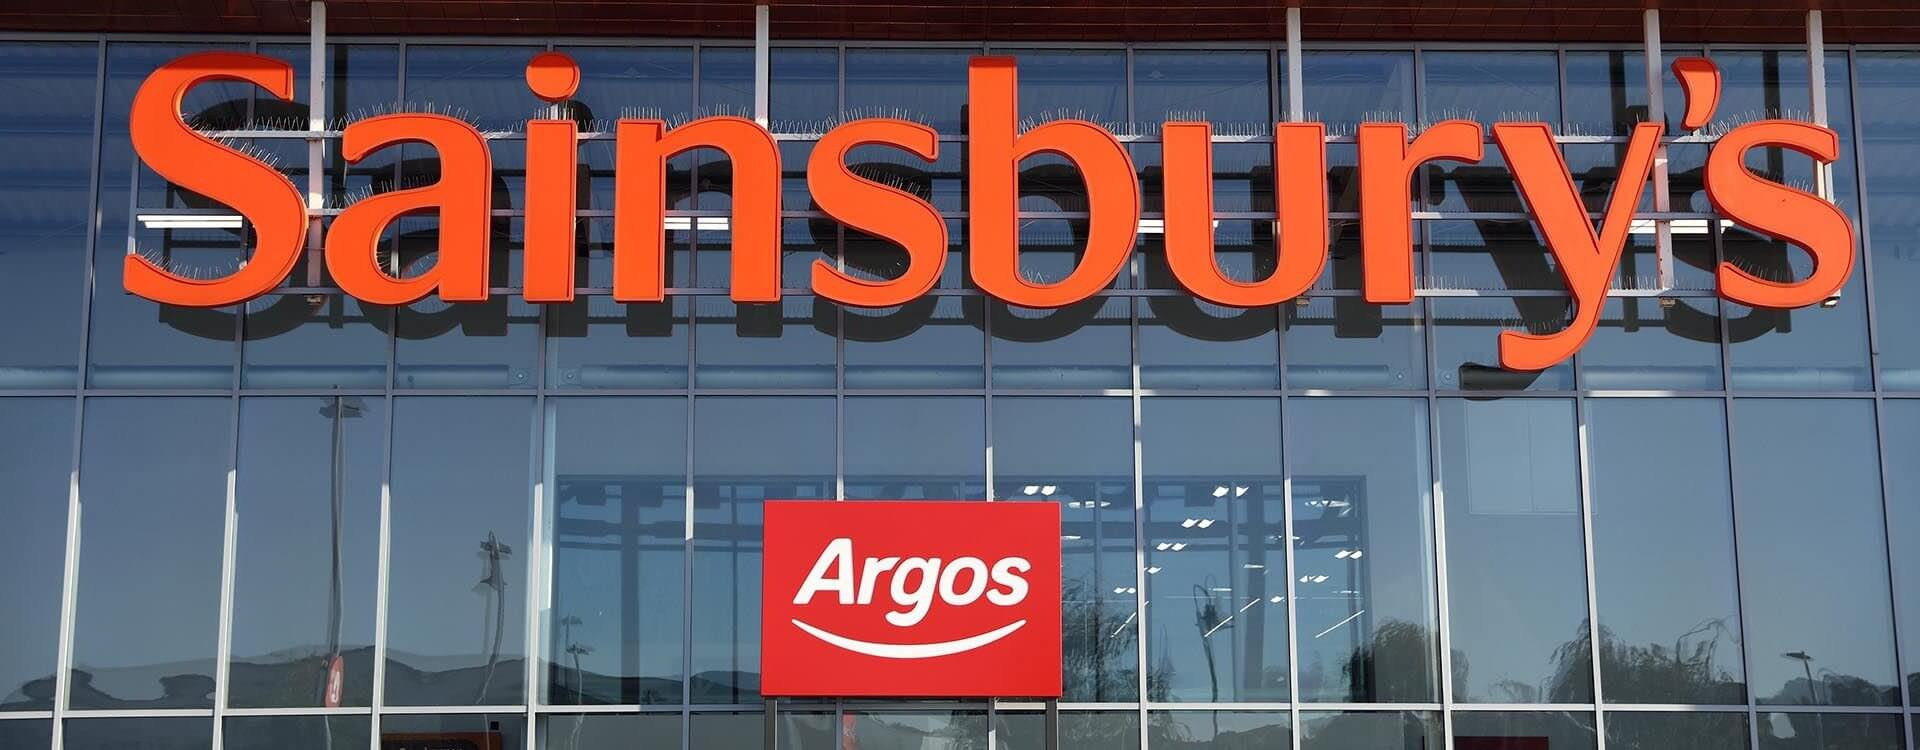 Image of Sainsburys and Argos store